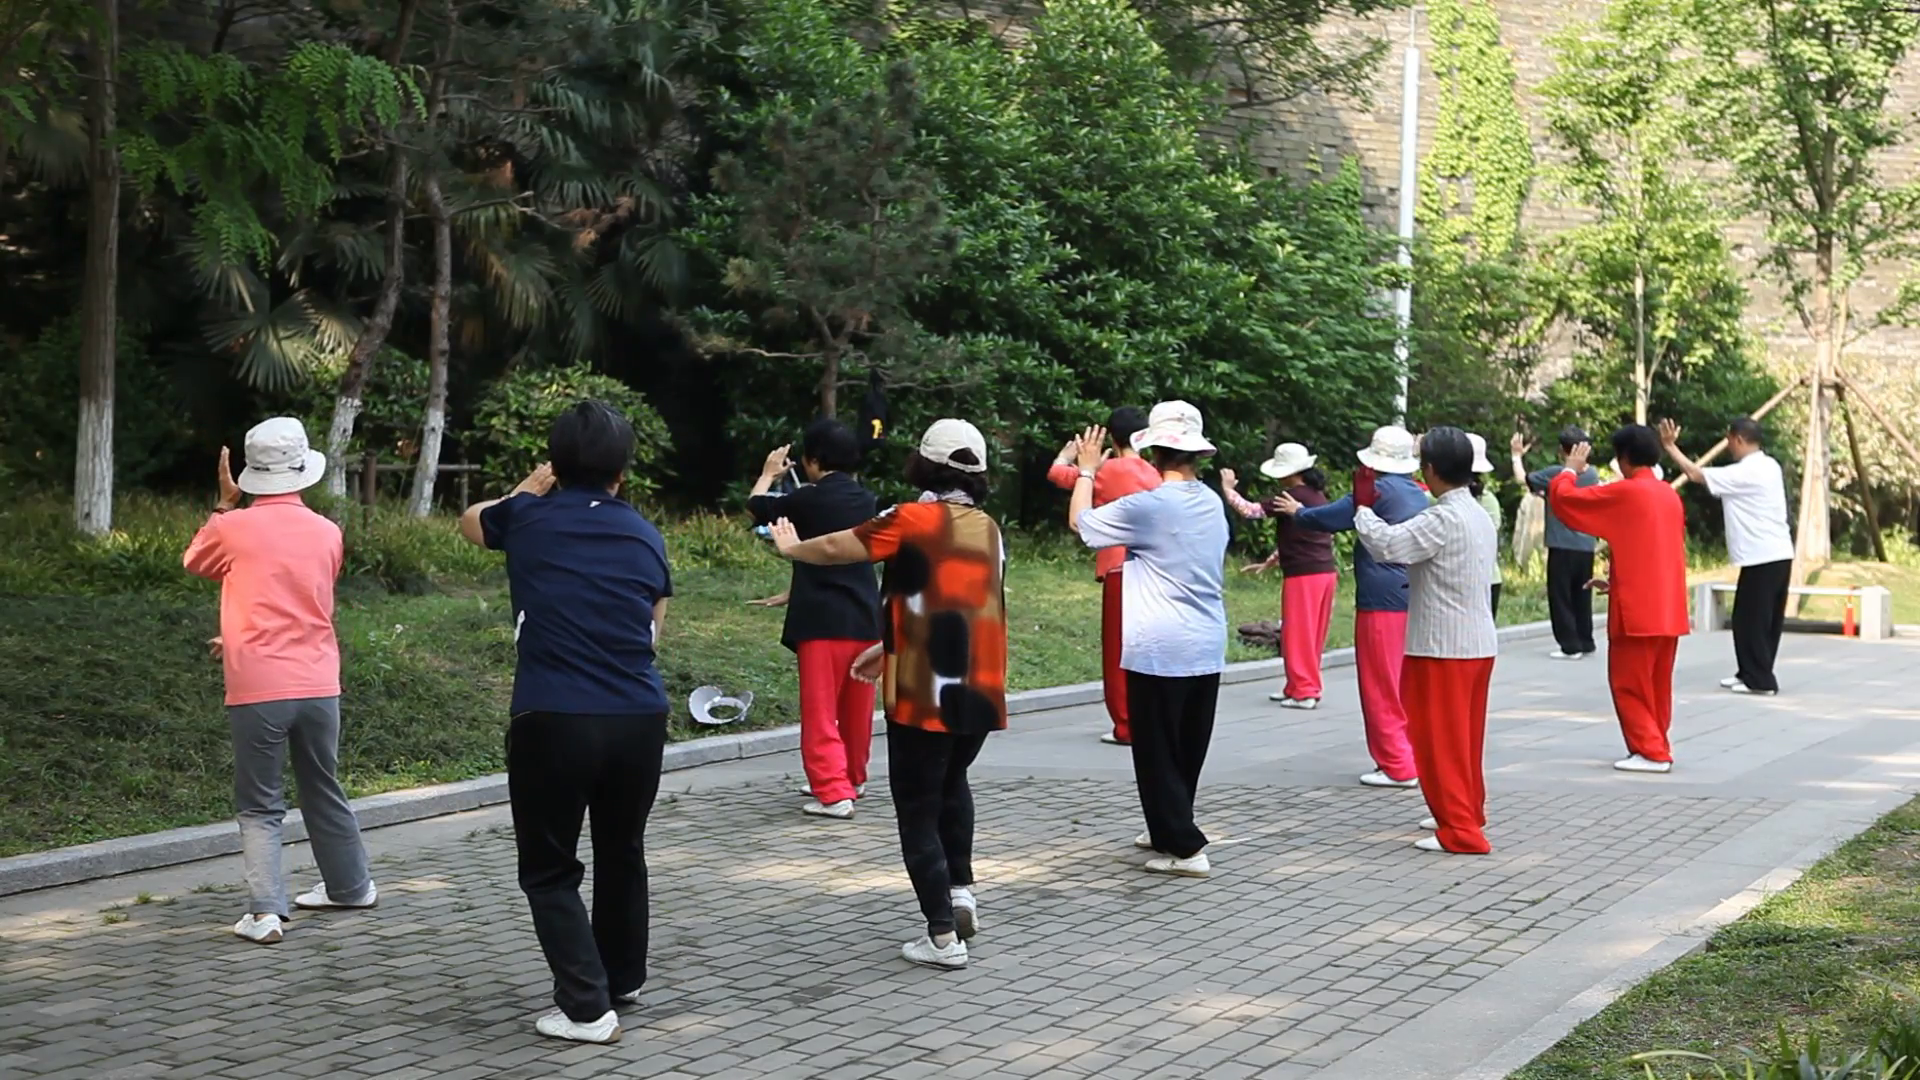 taiji-fitness-daily-chinese-tai-chi-exercise-nanjing-park-senior-people-practice-editorial-footage-news-documentary_4pu9pyzsg__F0000.png